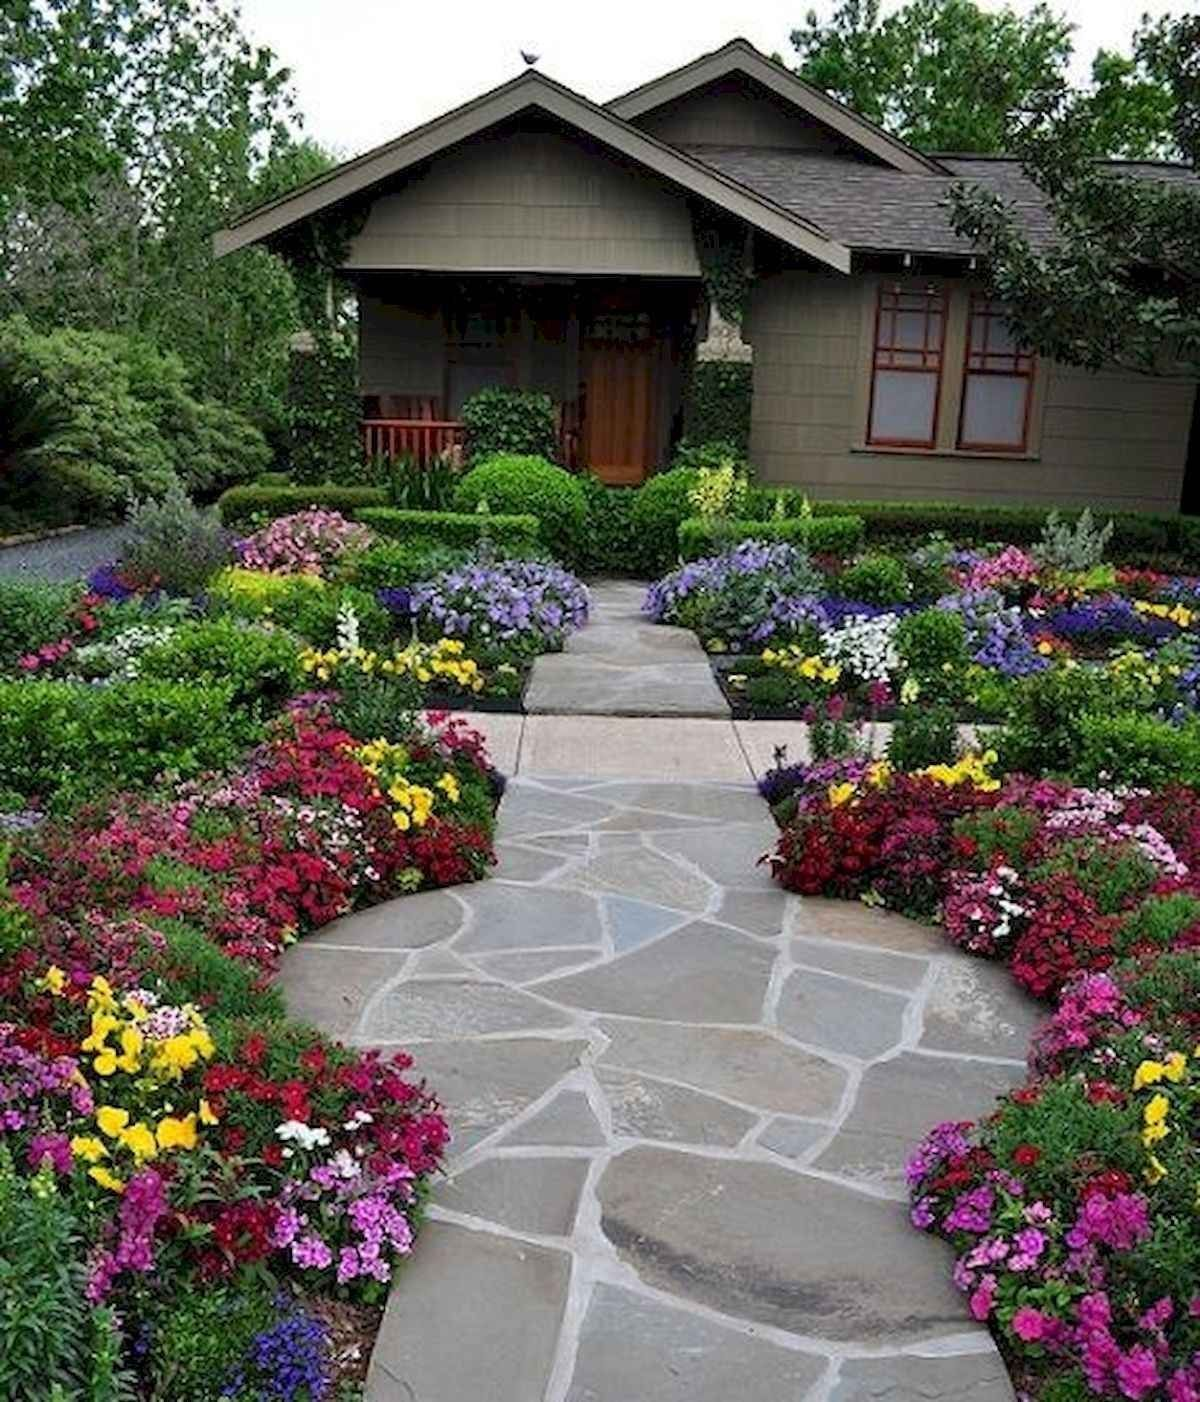 40 Cool Front Yard Garden Landscaping Design Ideas And ... on Front Yard Renovation Ideas id=78906